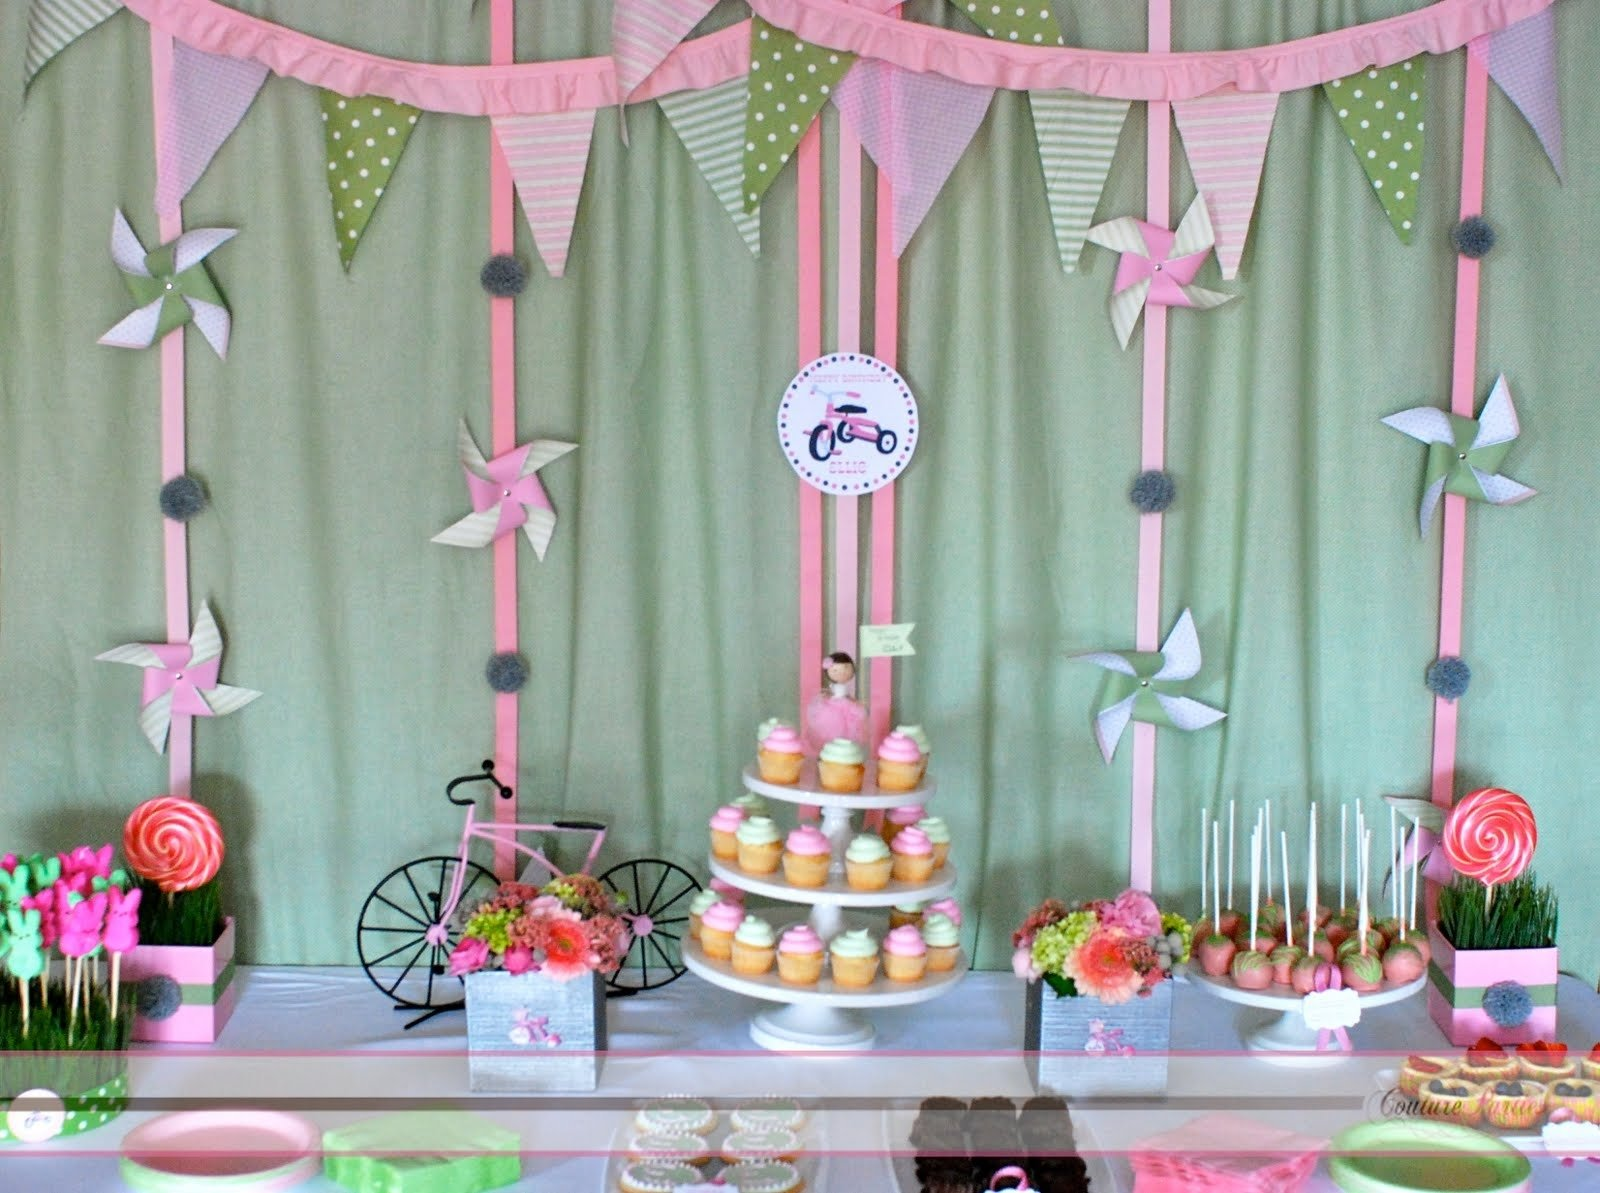 10 Trendy Indoor Birthday Party Ideas For 10 Year Old Boys themes birthday indoor birthday party ideas for 10 year olds in 4 2021